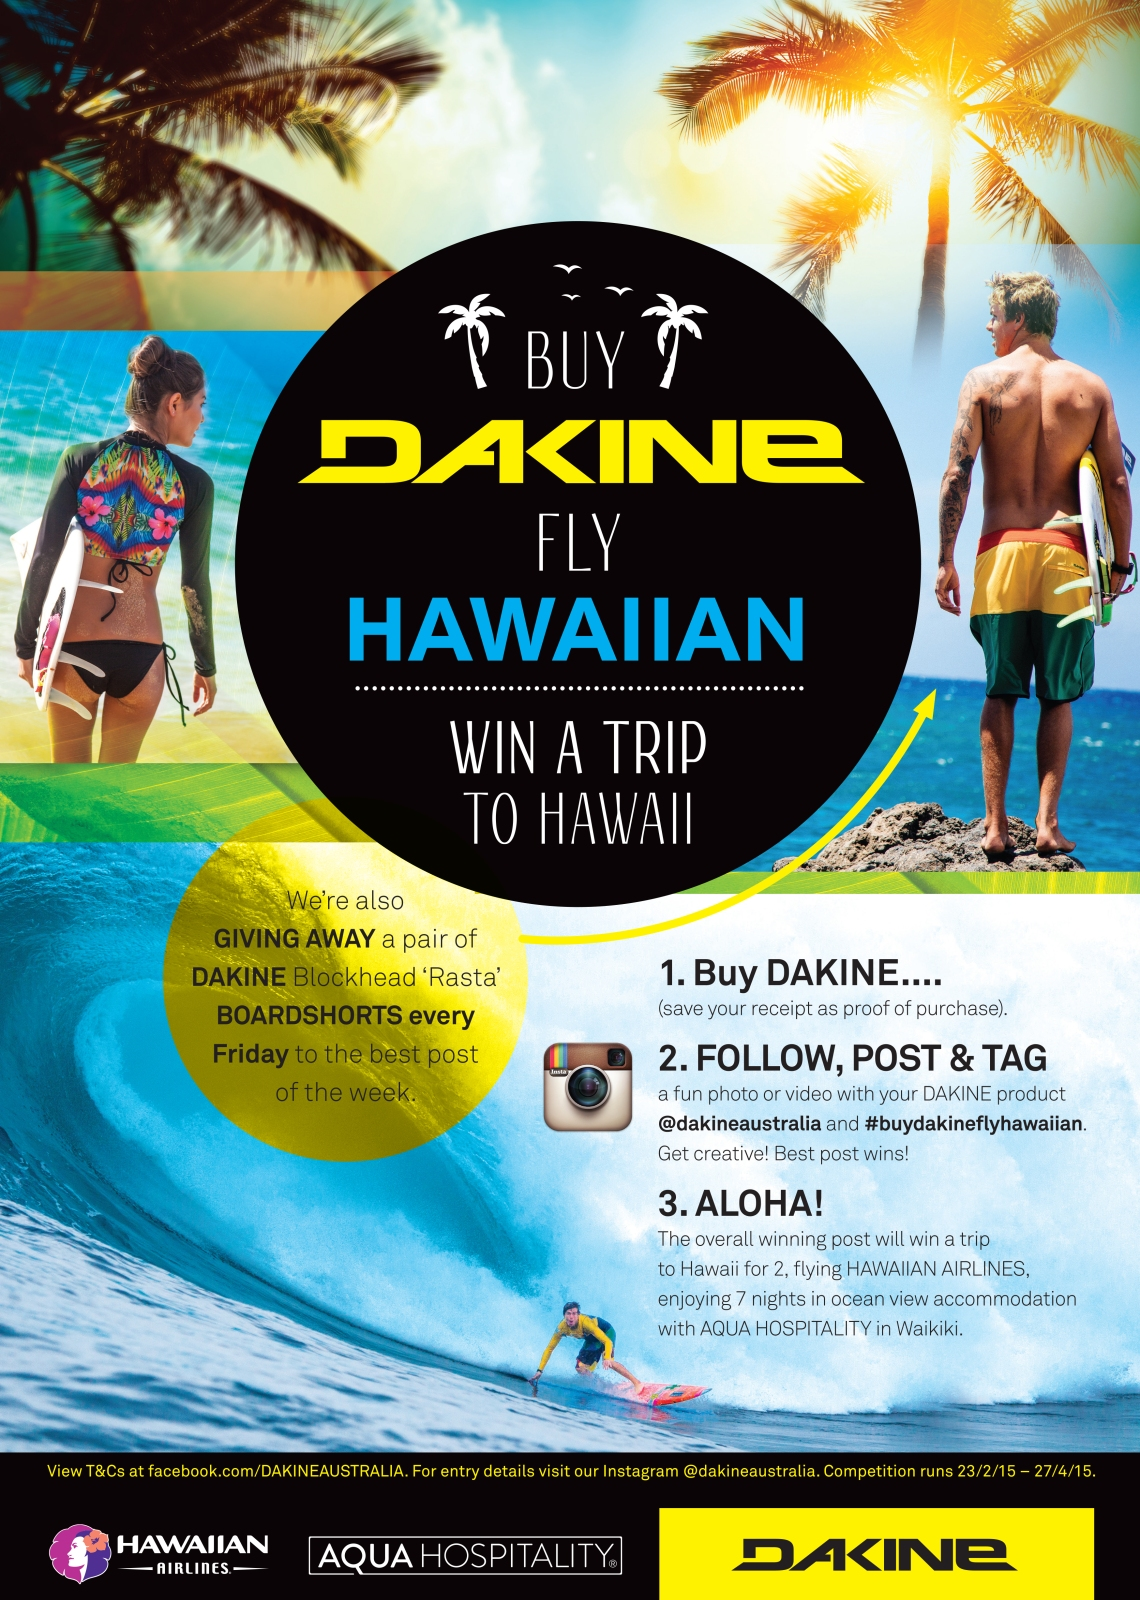 DAKINE + HAWAIIN AIRLINES